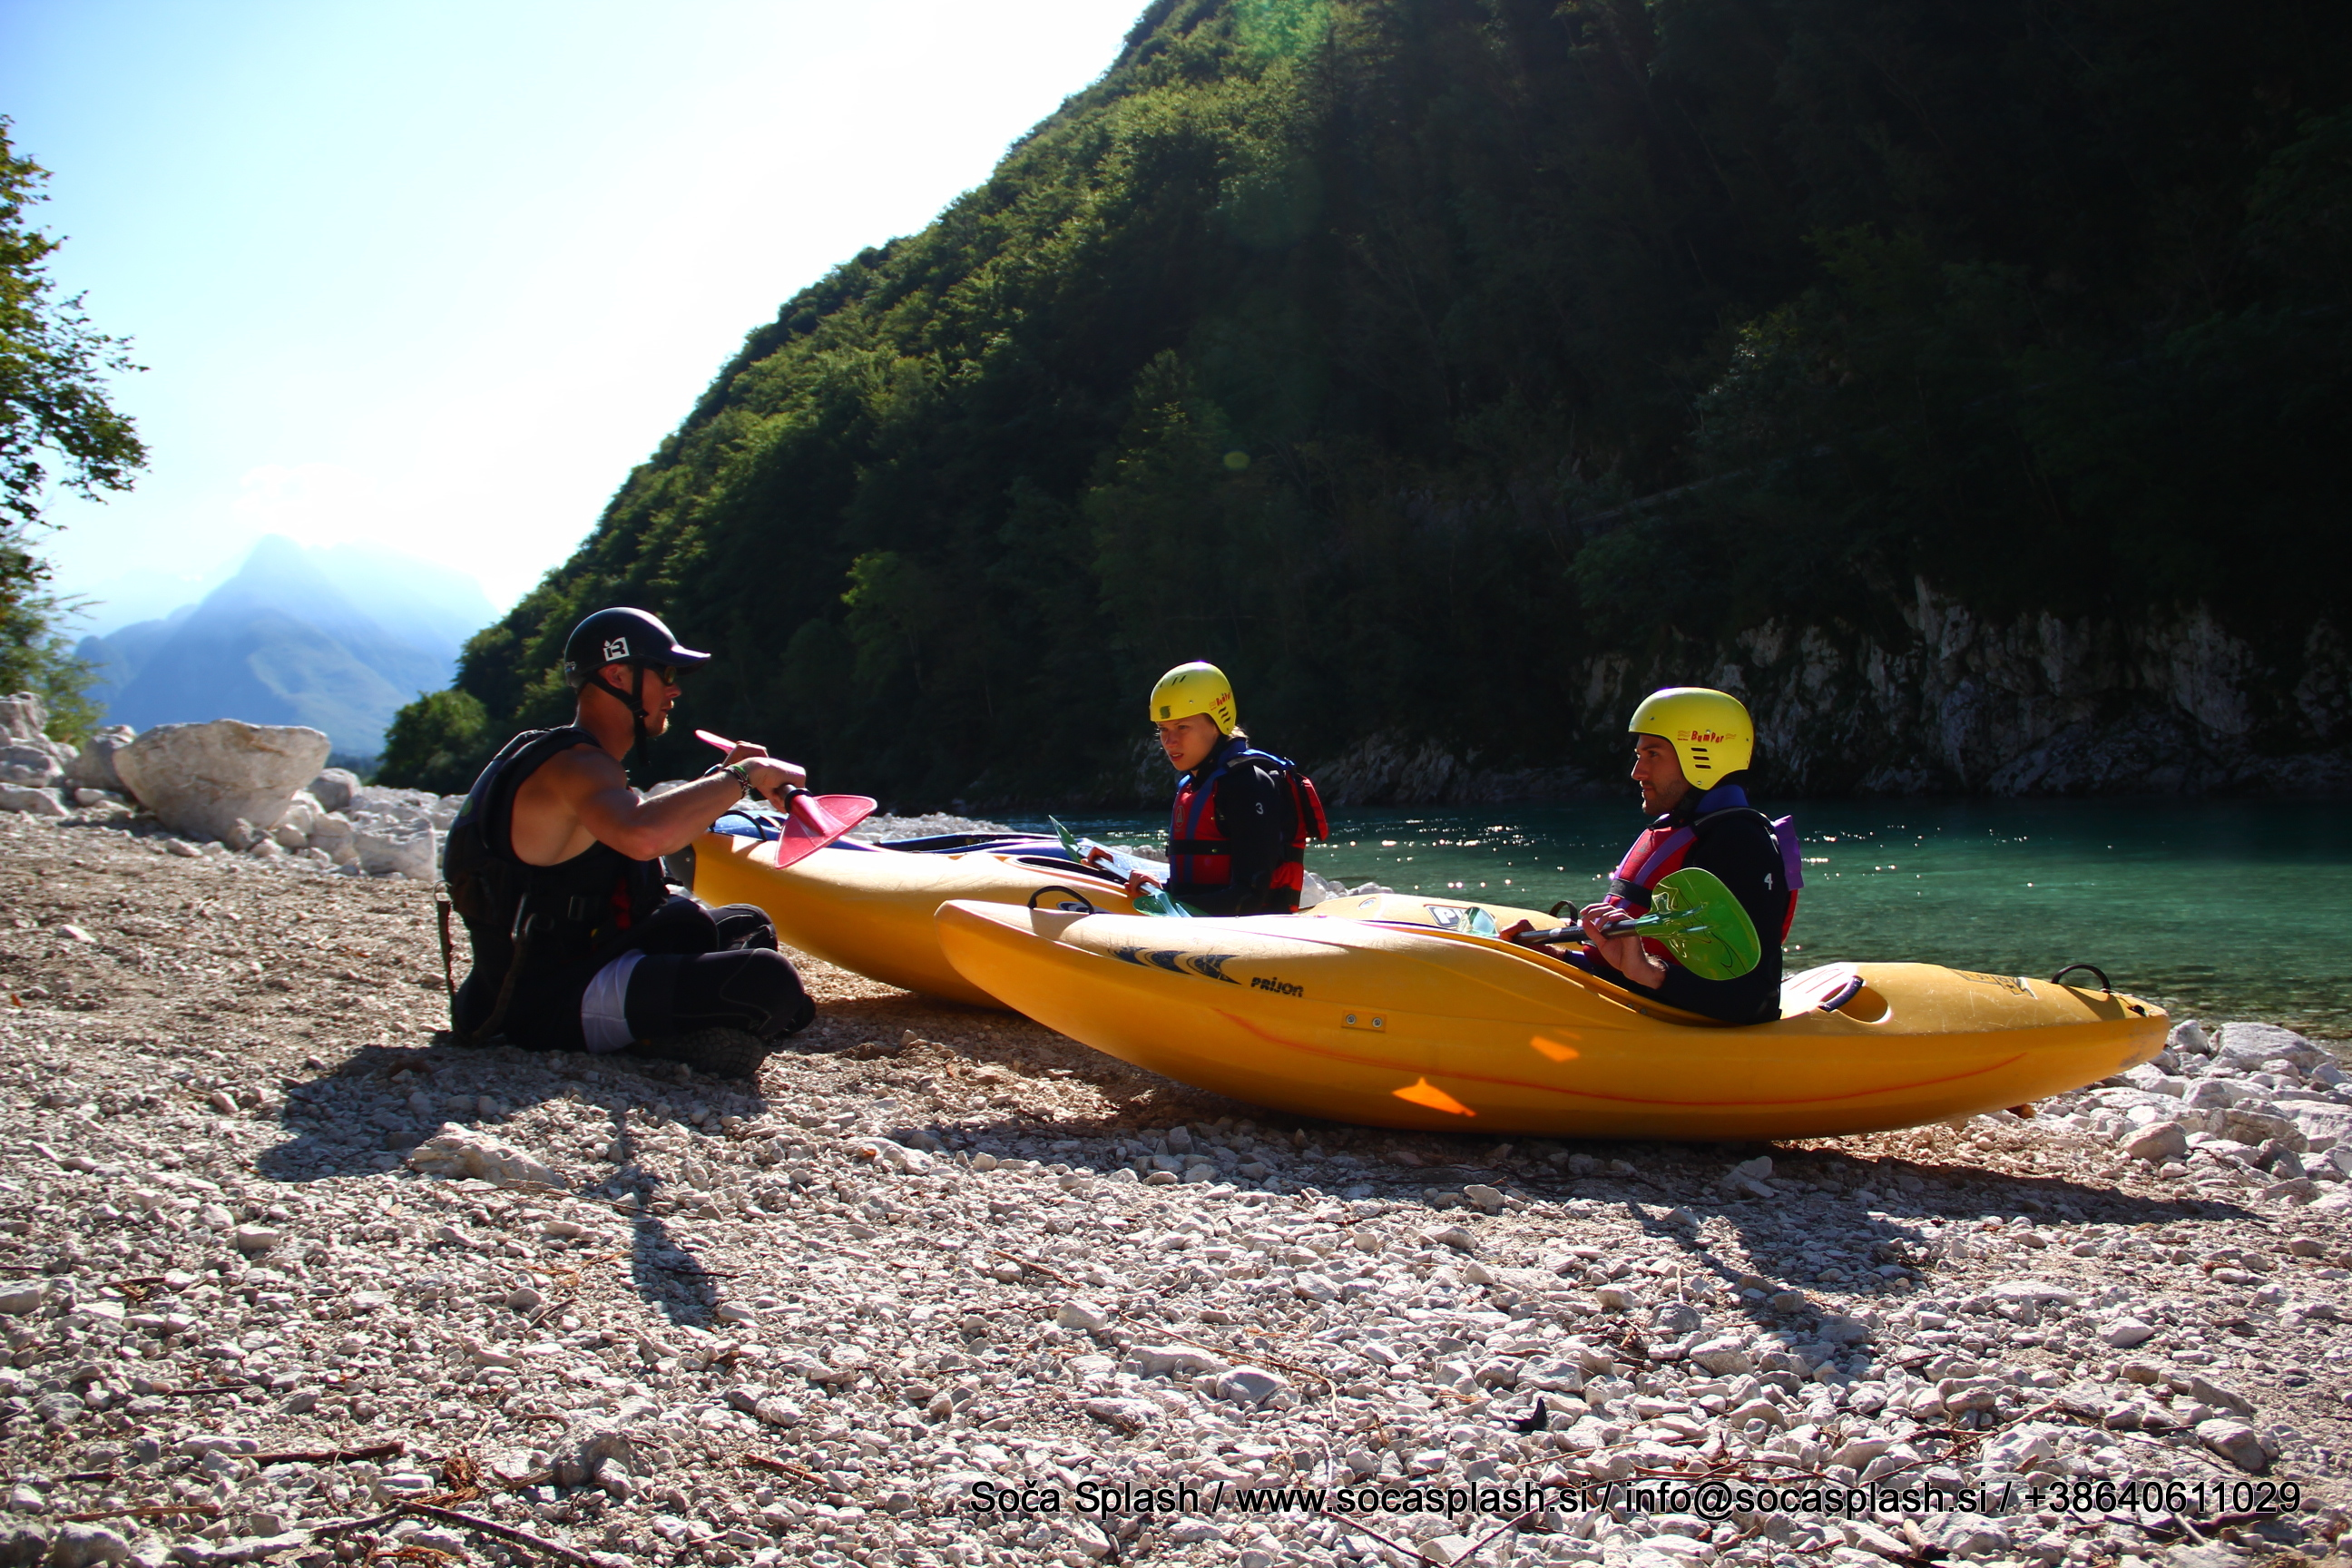 Prepare for a kayaking course on the Soca River